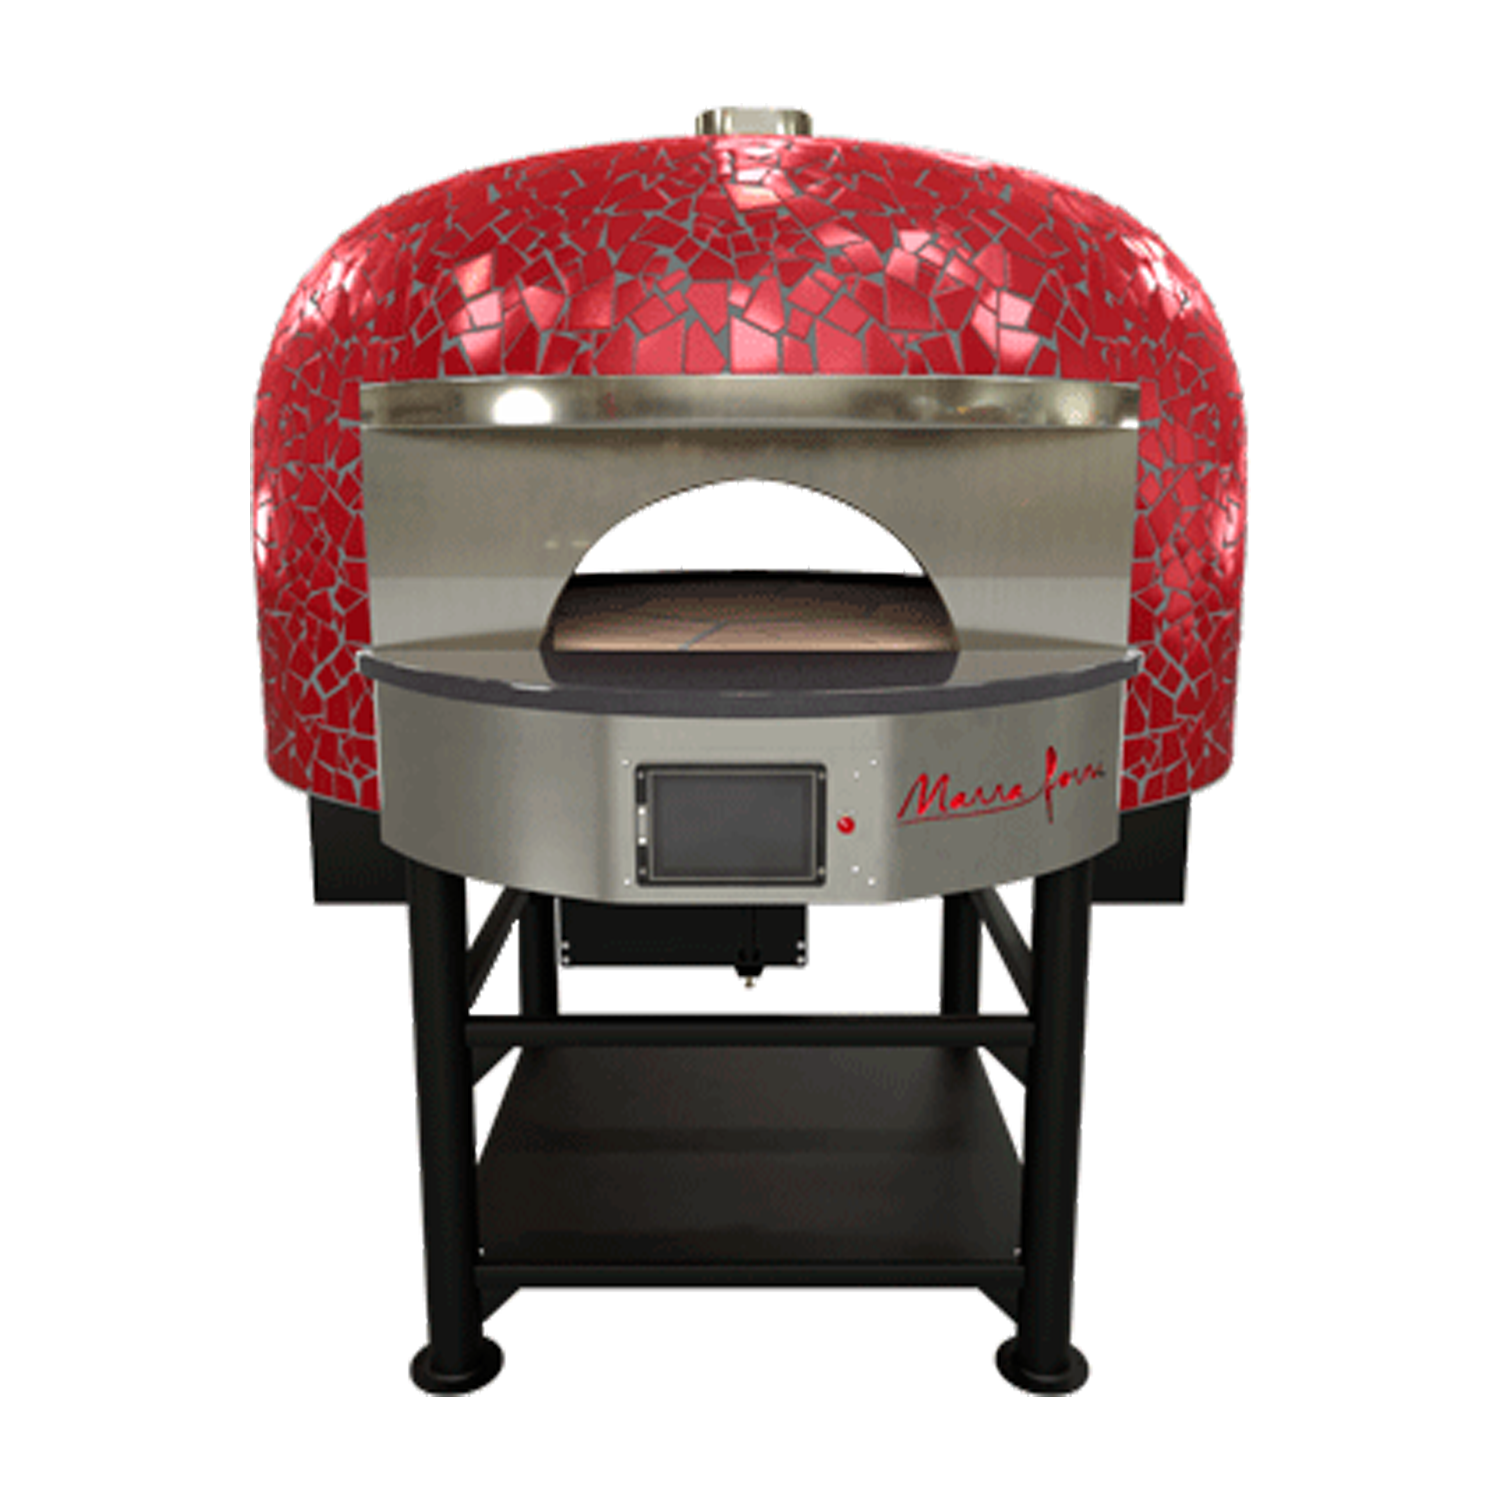 Red Marra Forni Double Mouth Rotator Brick Oven